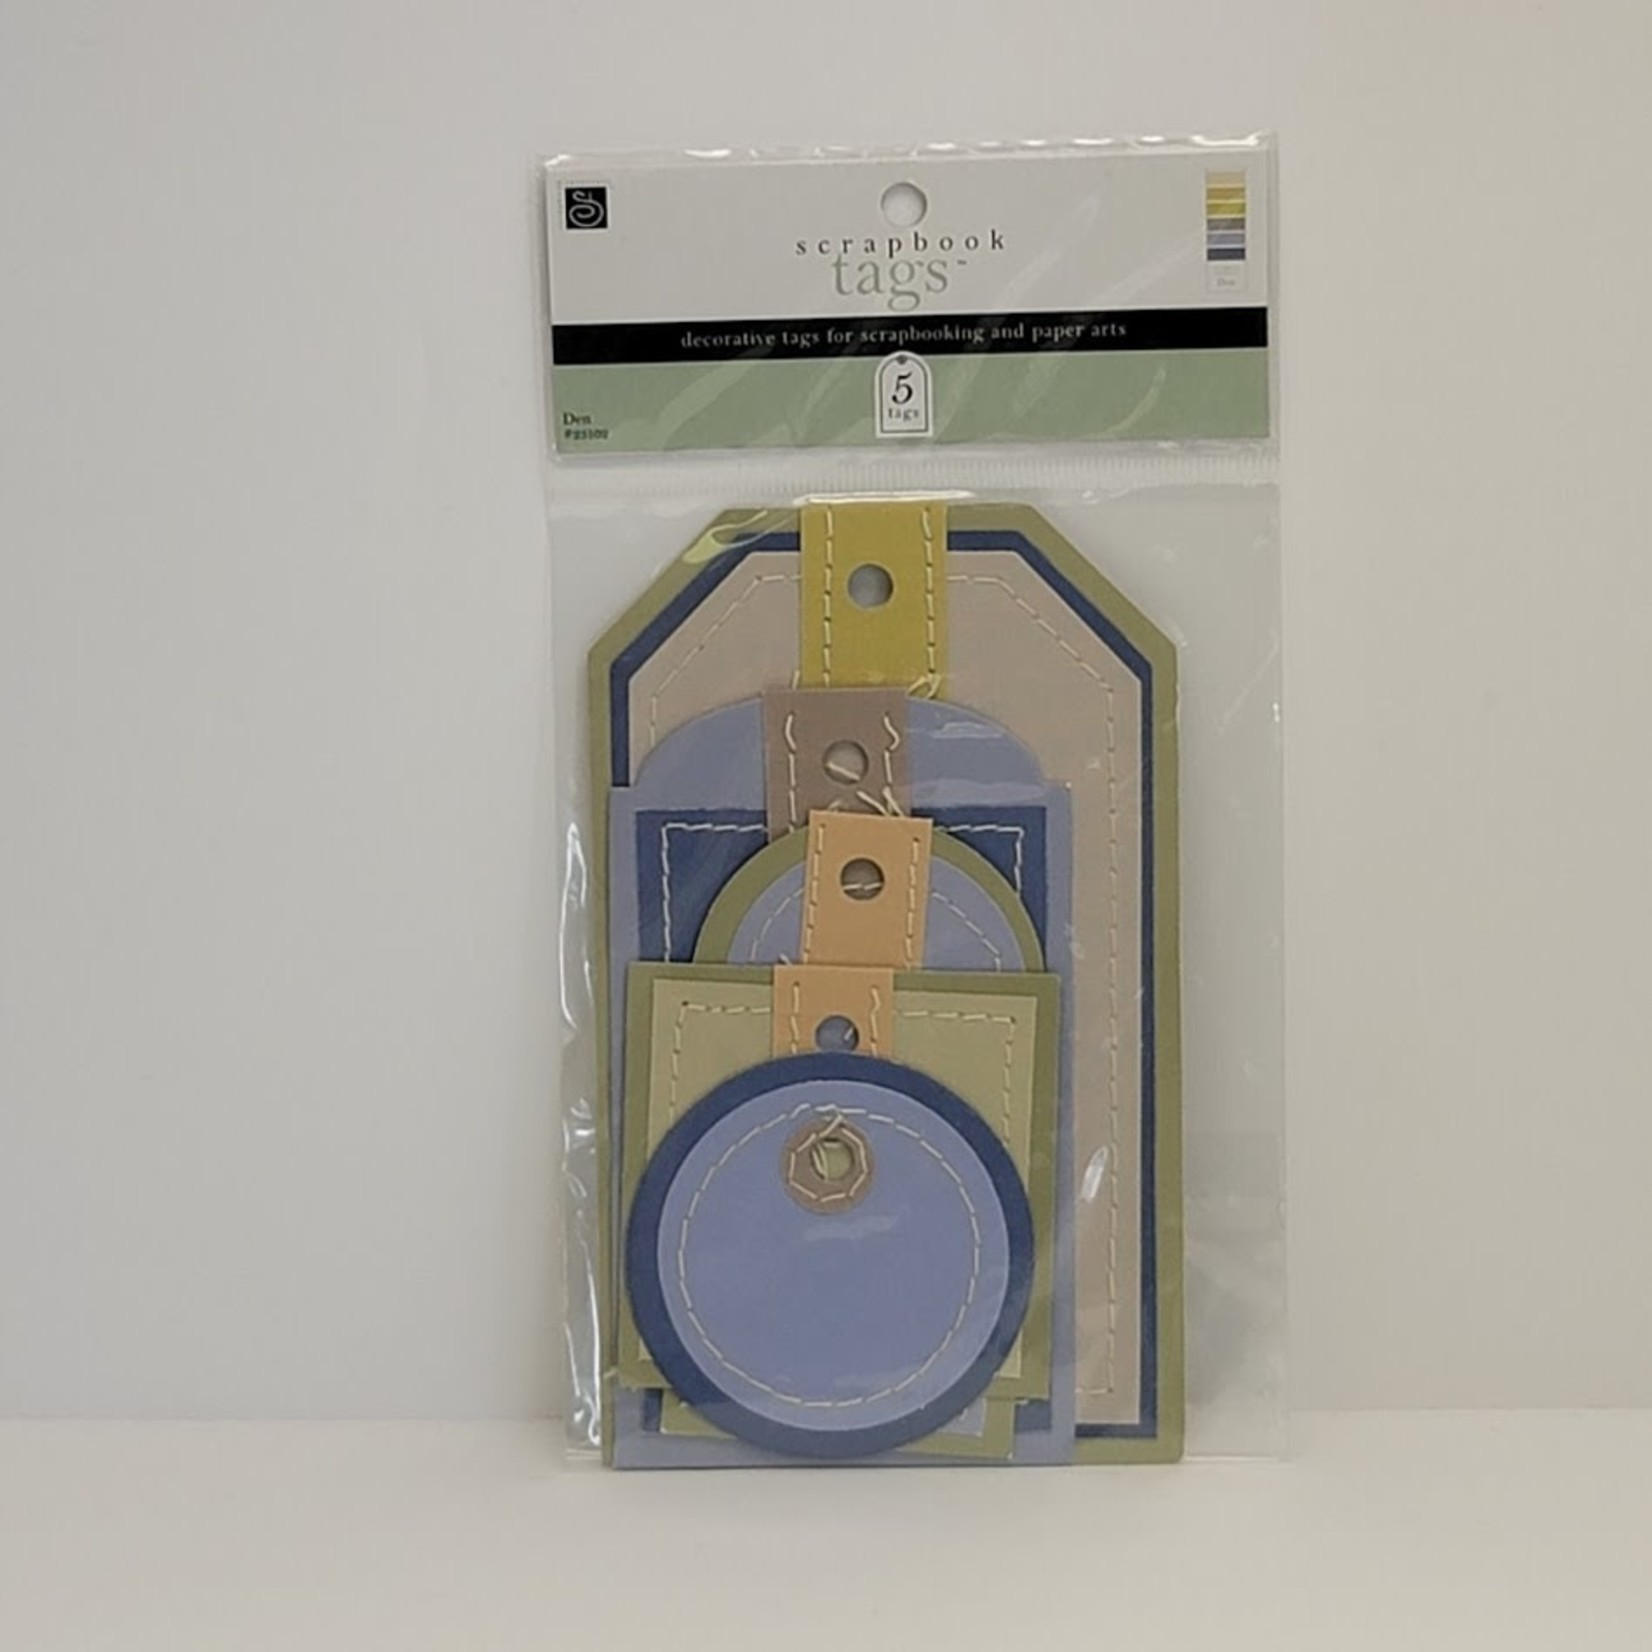 Scrapbook Tags - 5 Tags